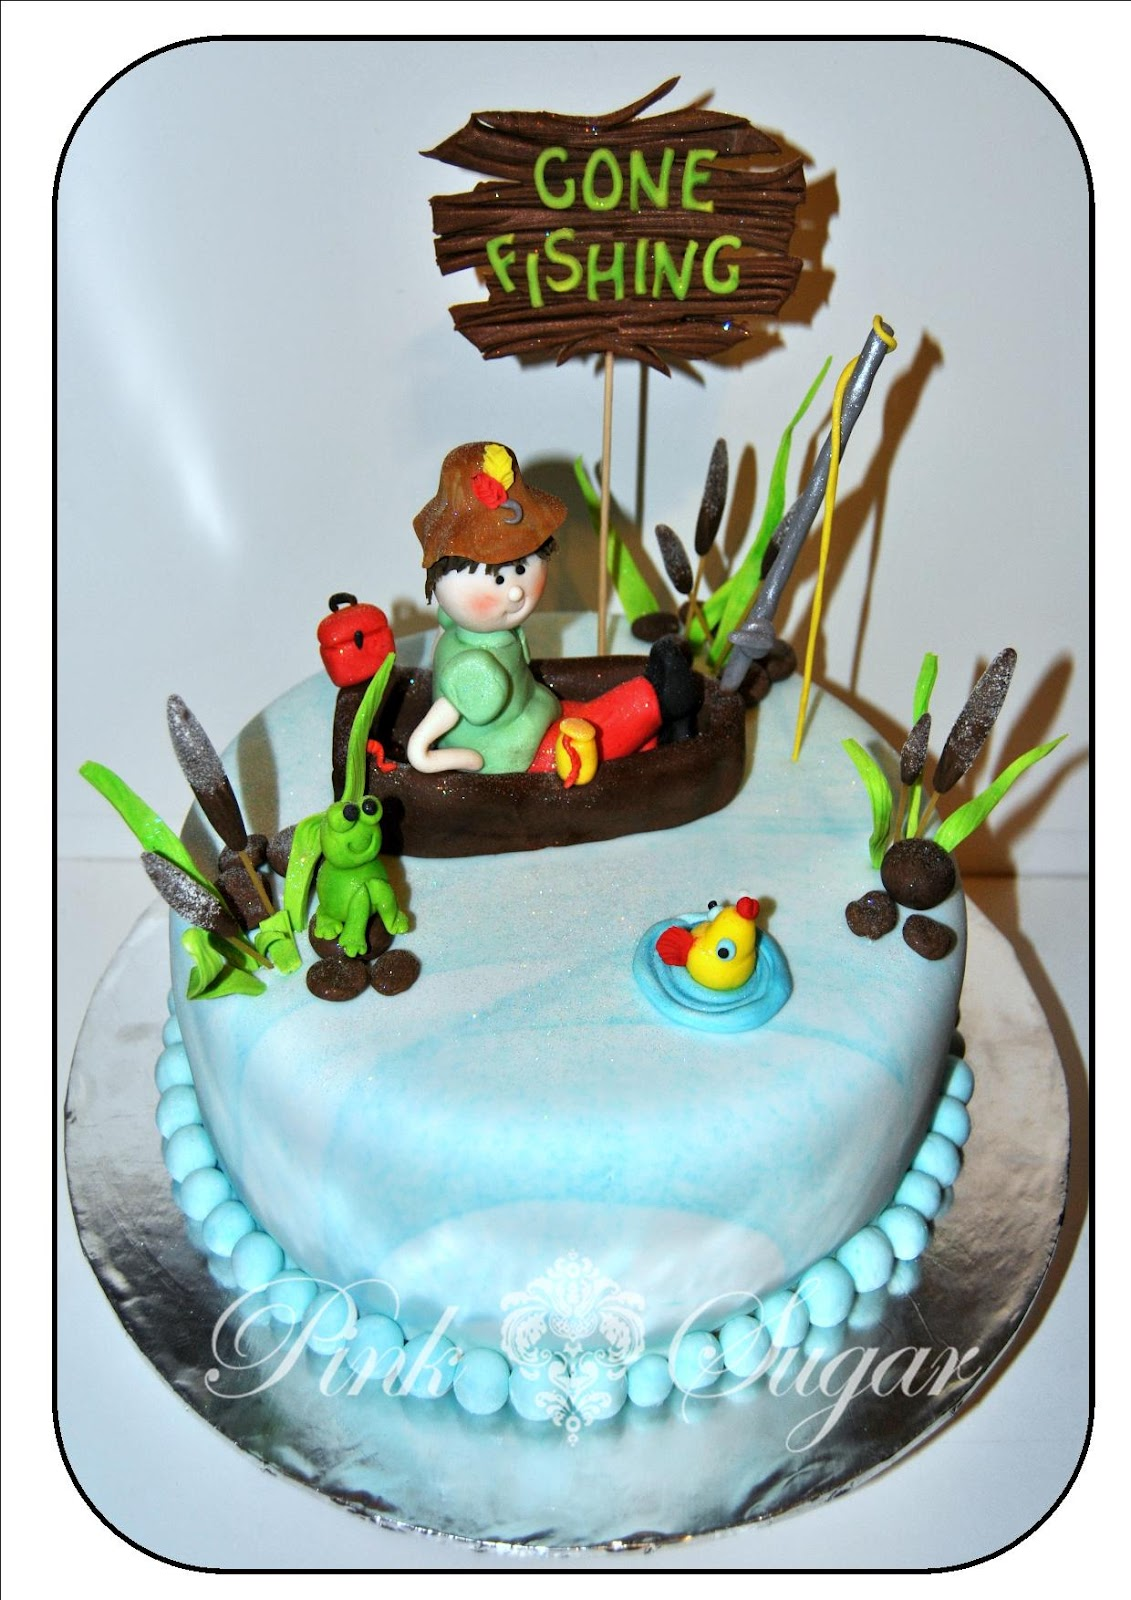 Pink sugar gone fishing cake for Fishing themed cakes